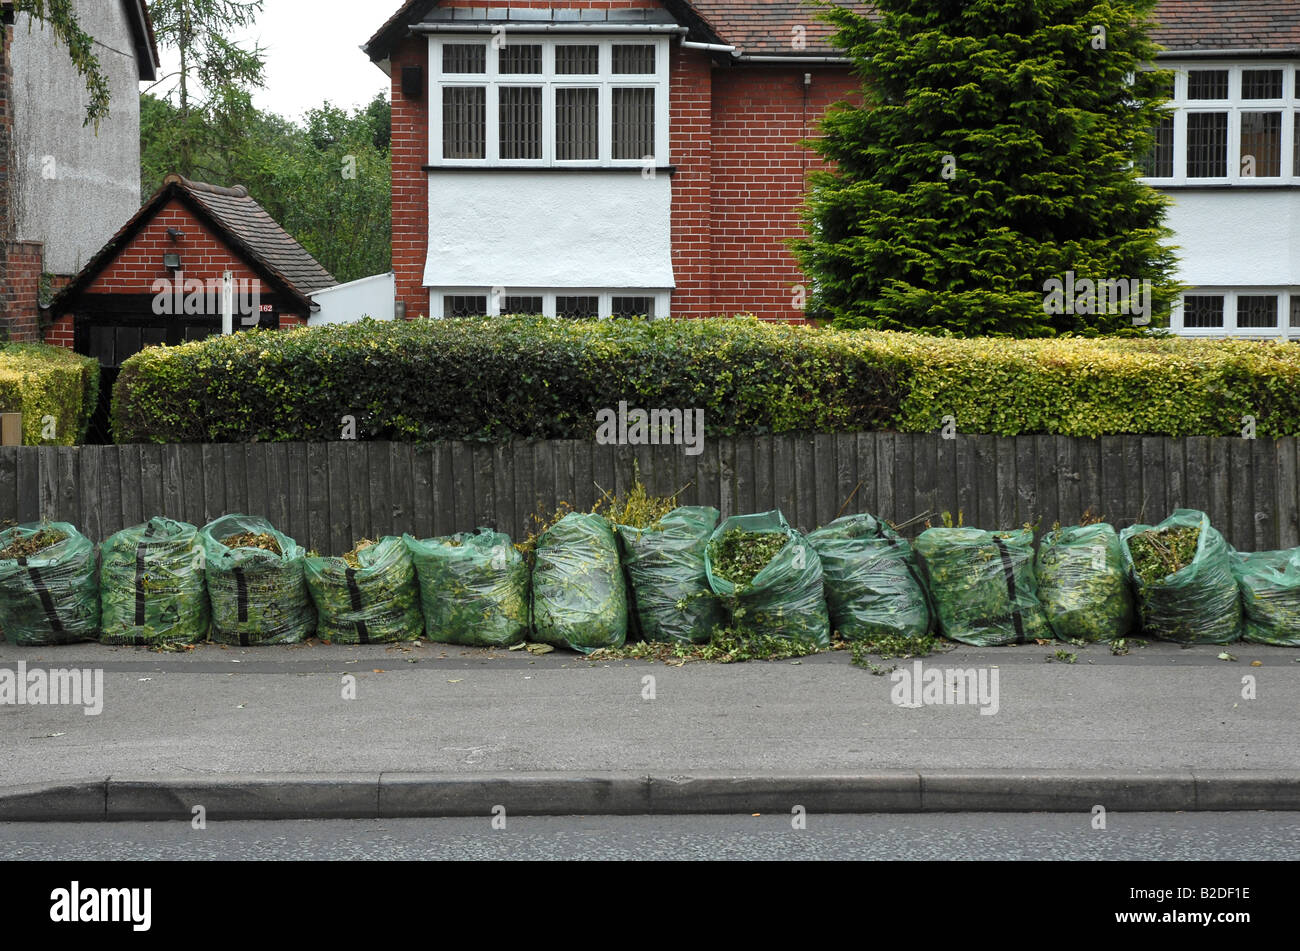 Green bags of garden waste await collection on the pavement in front of a suburban house with a  trimmed hedge in - Stock Image